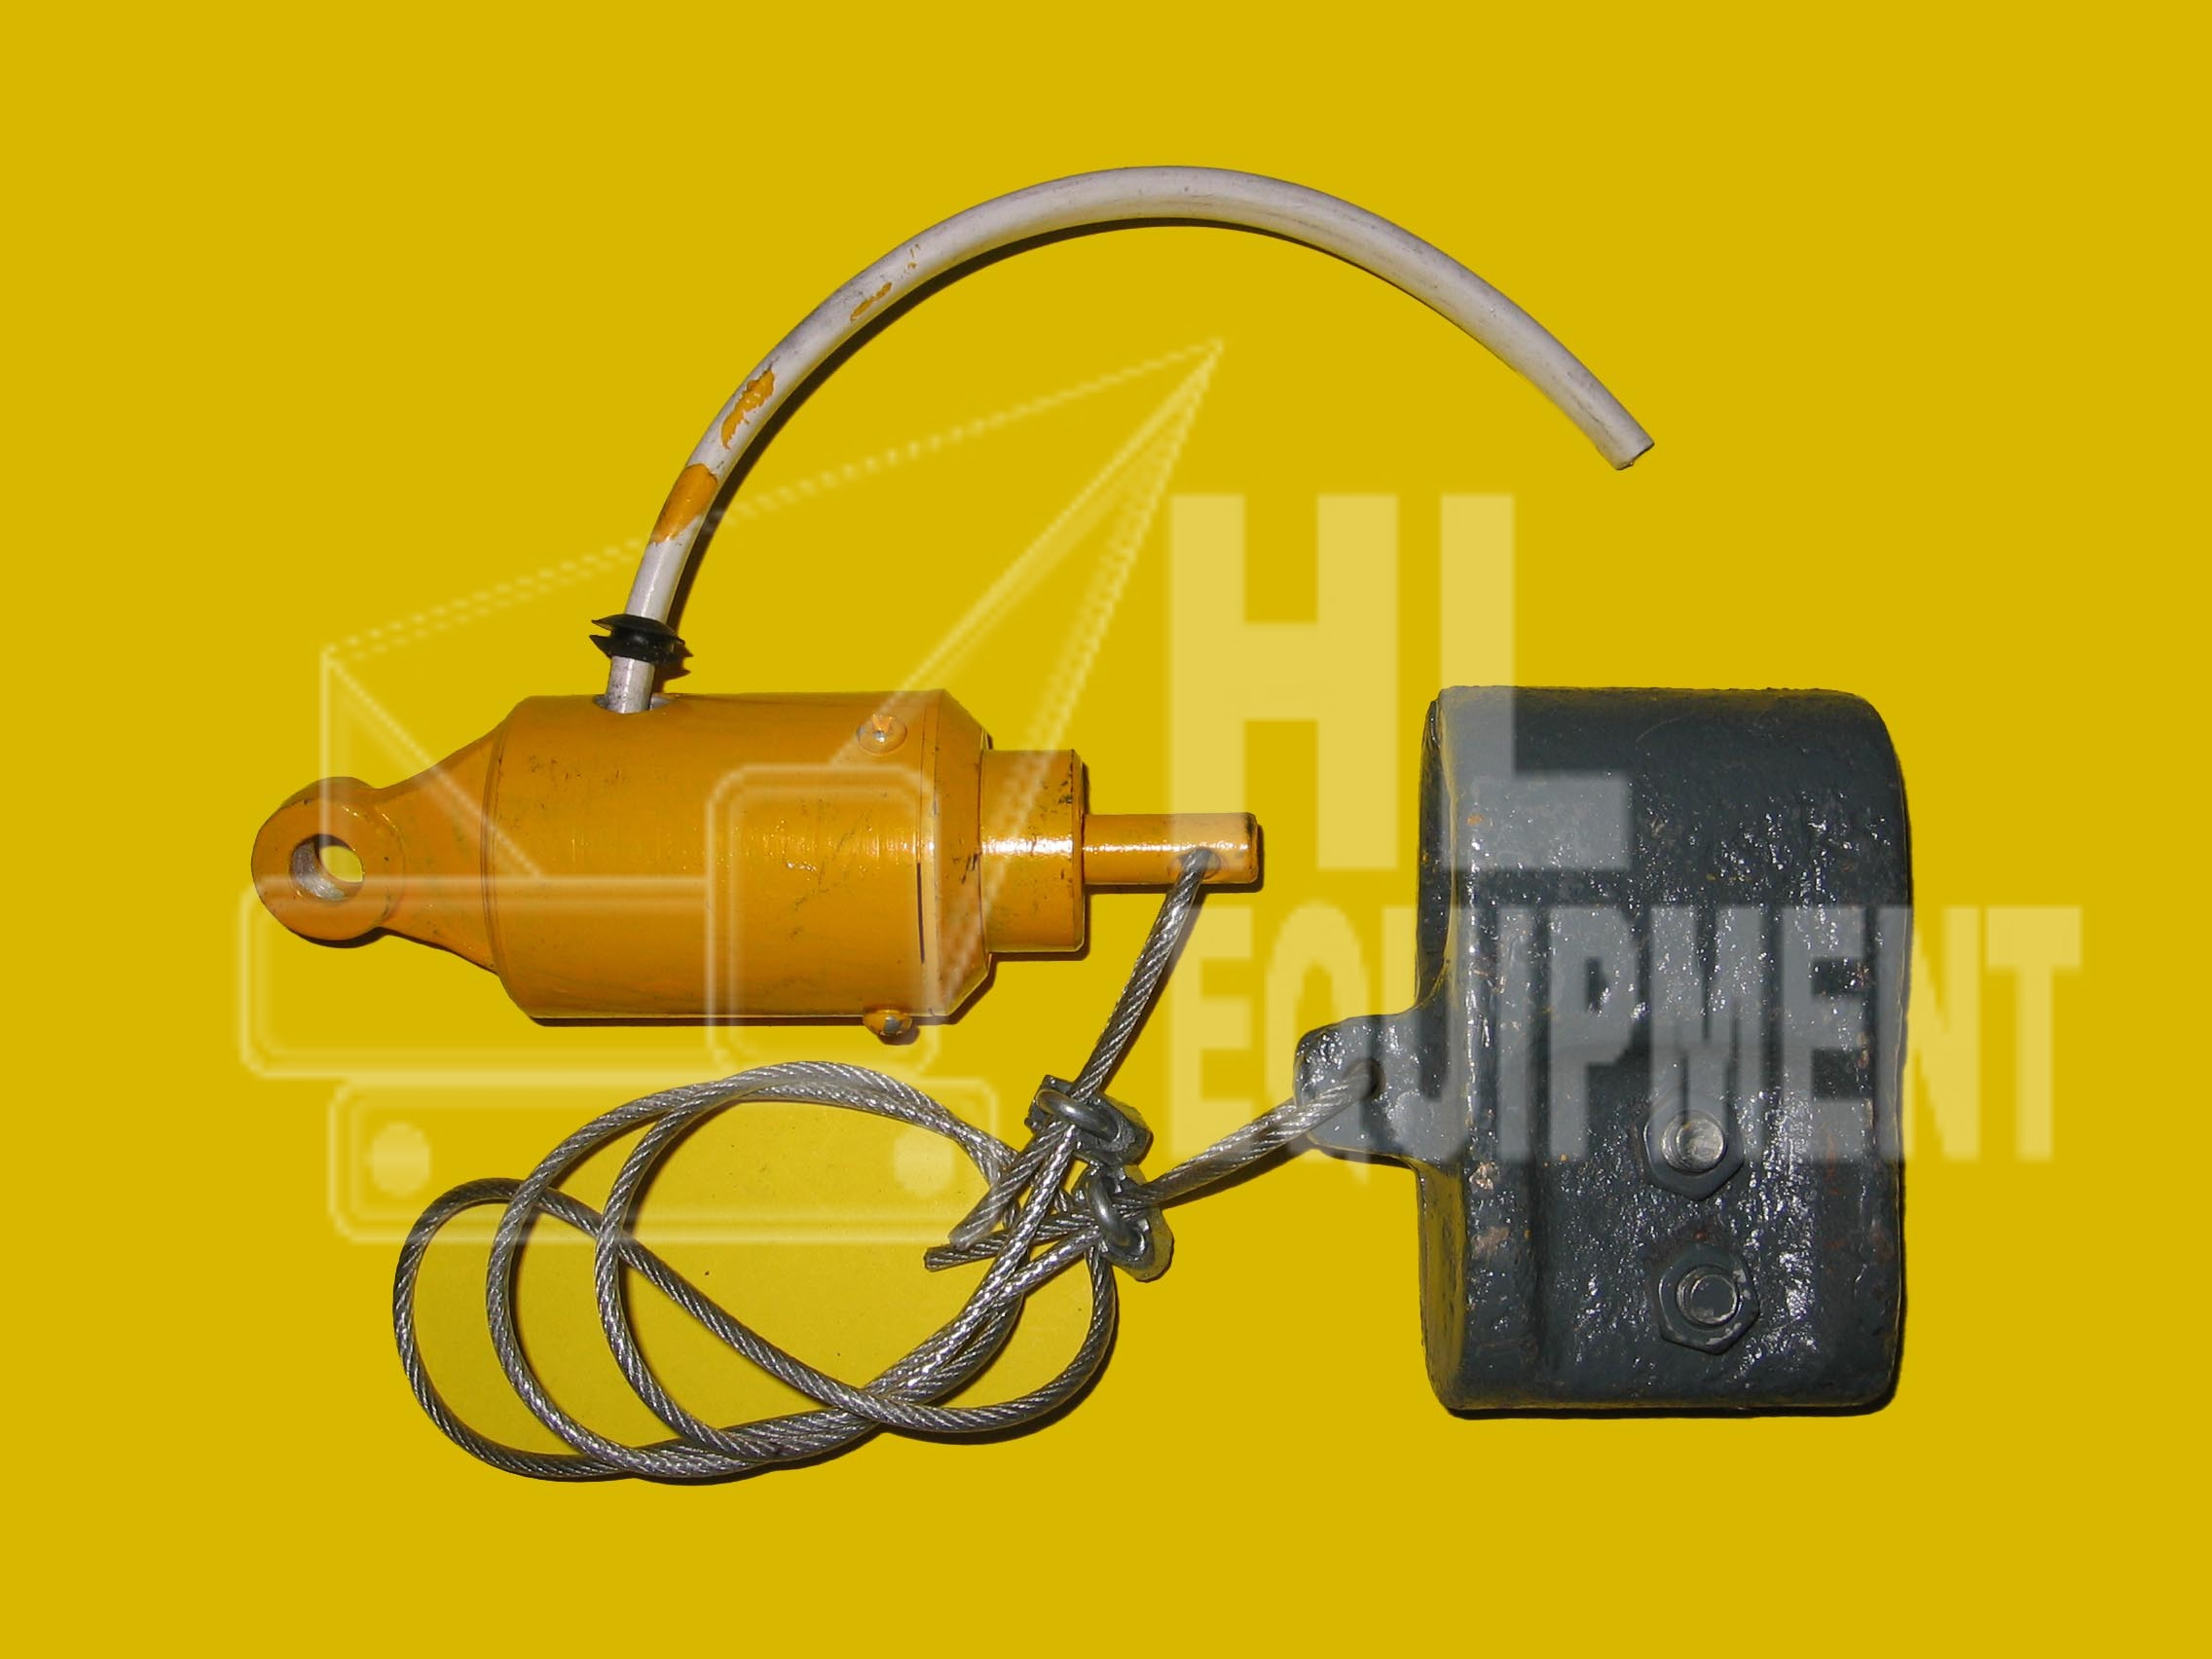 Kato Limit Switch